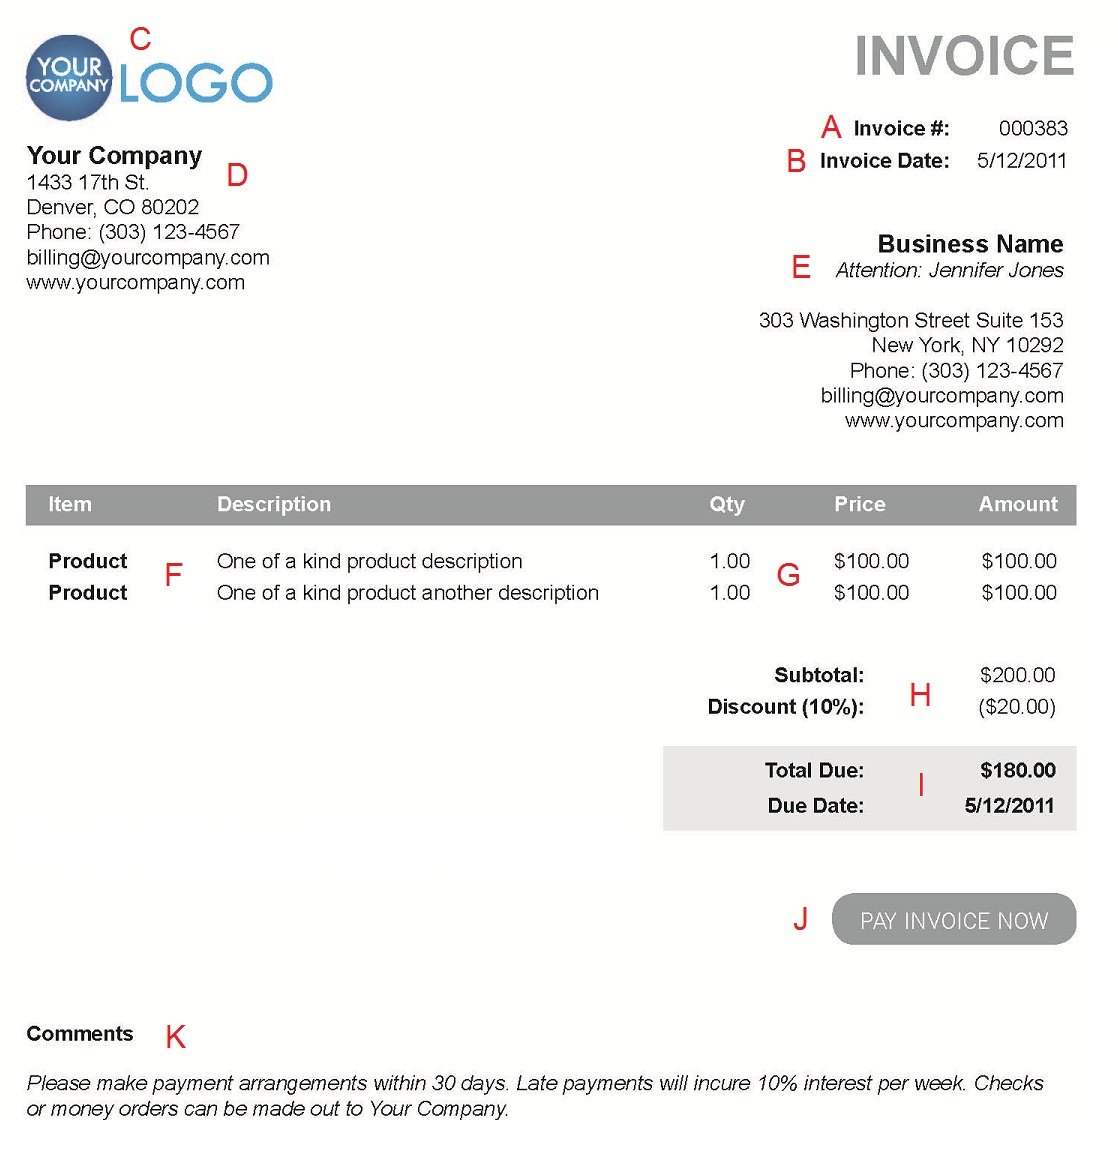 Opposenewapstandardsus  Remarkable The  Different Sections Of An Electronic Payment Invoice With Magnificent A  With Captivating Gst Invoices Also Invoice Template Samples In Addition Express Invoice Free Download And Email Template For Invoice As Well As Free Plumbing Invoice Template Additionally Invoice Accounting Software From Paysimplecom With Opposenewapstandardsus  Magnificent The  Different Sections Of An Electronic Payment Invoice With Captivating A  And Remarkable Gst Invoices Also Invoice Template Samples In Addition Express Invoice Free Download From Paysimplecom